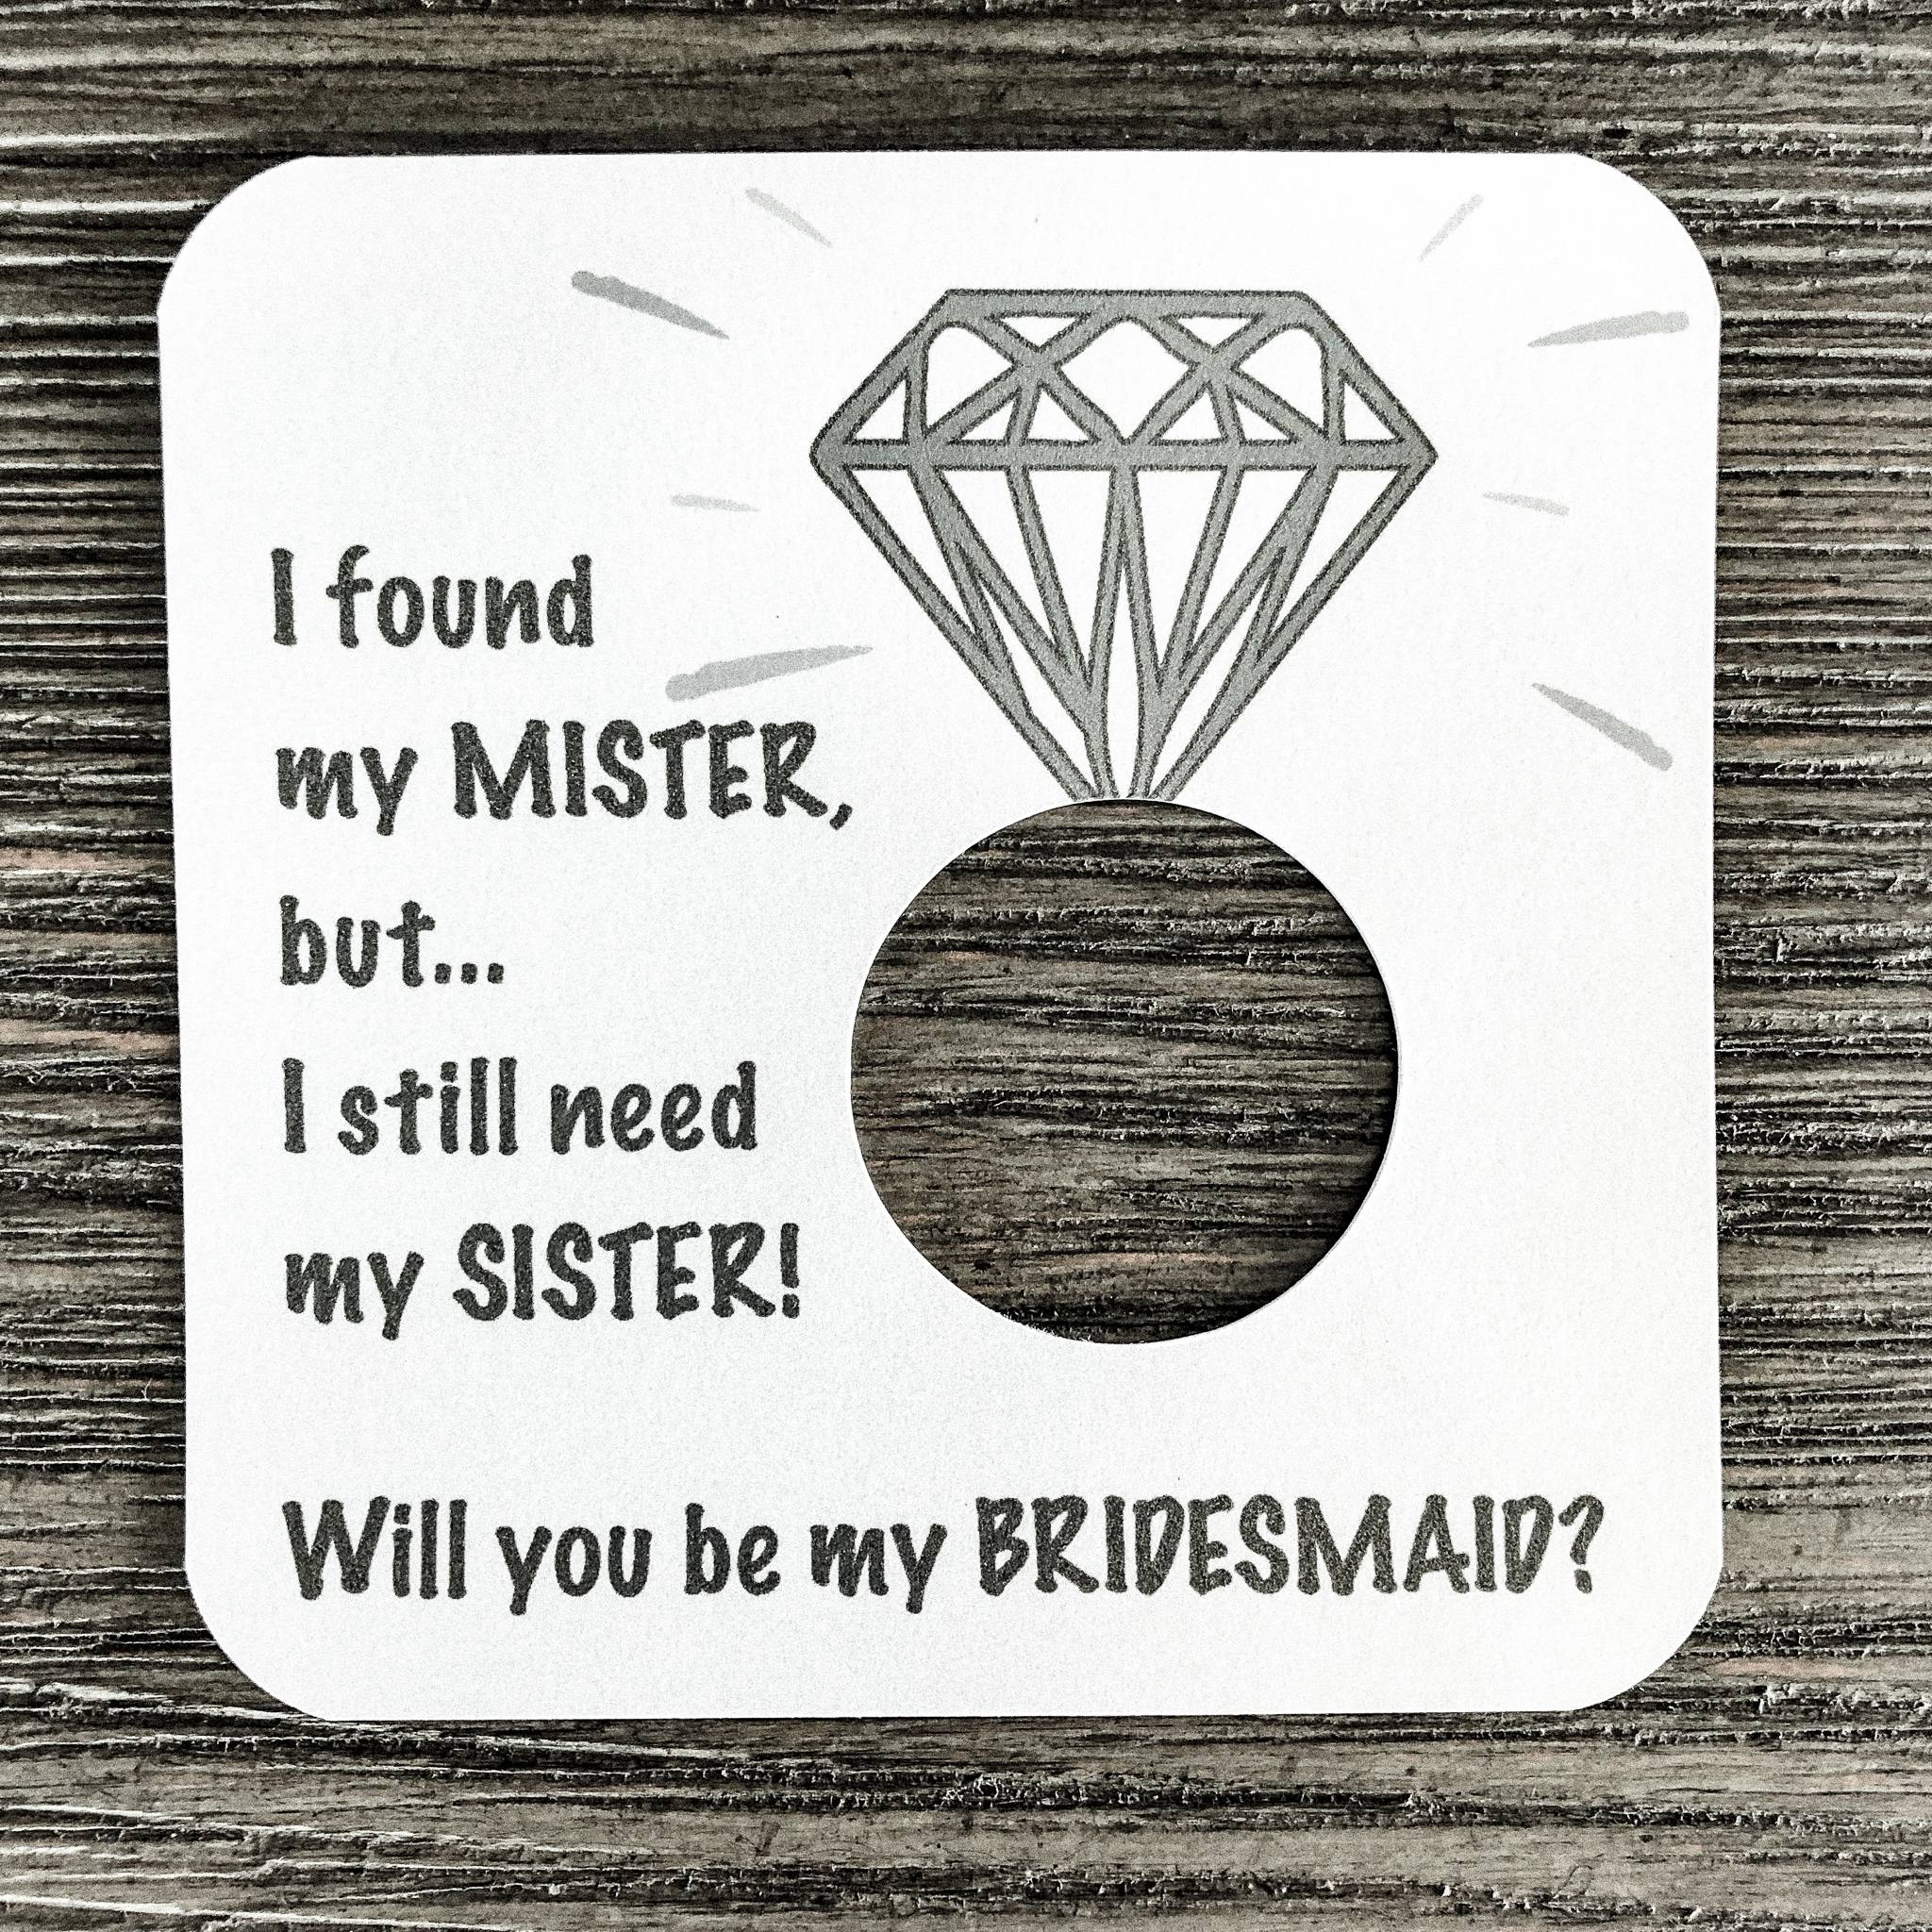 I found my mister, but I still need my sister! Will you be my maid of bridesmaid? Plain white cardstock